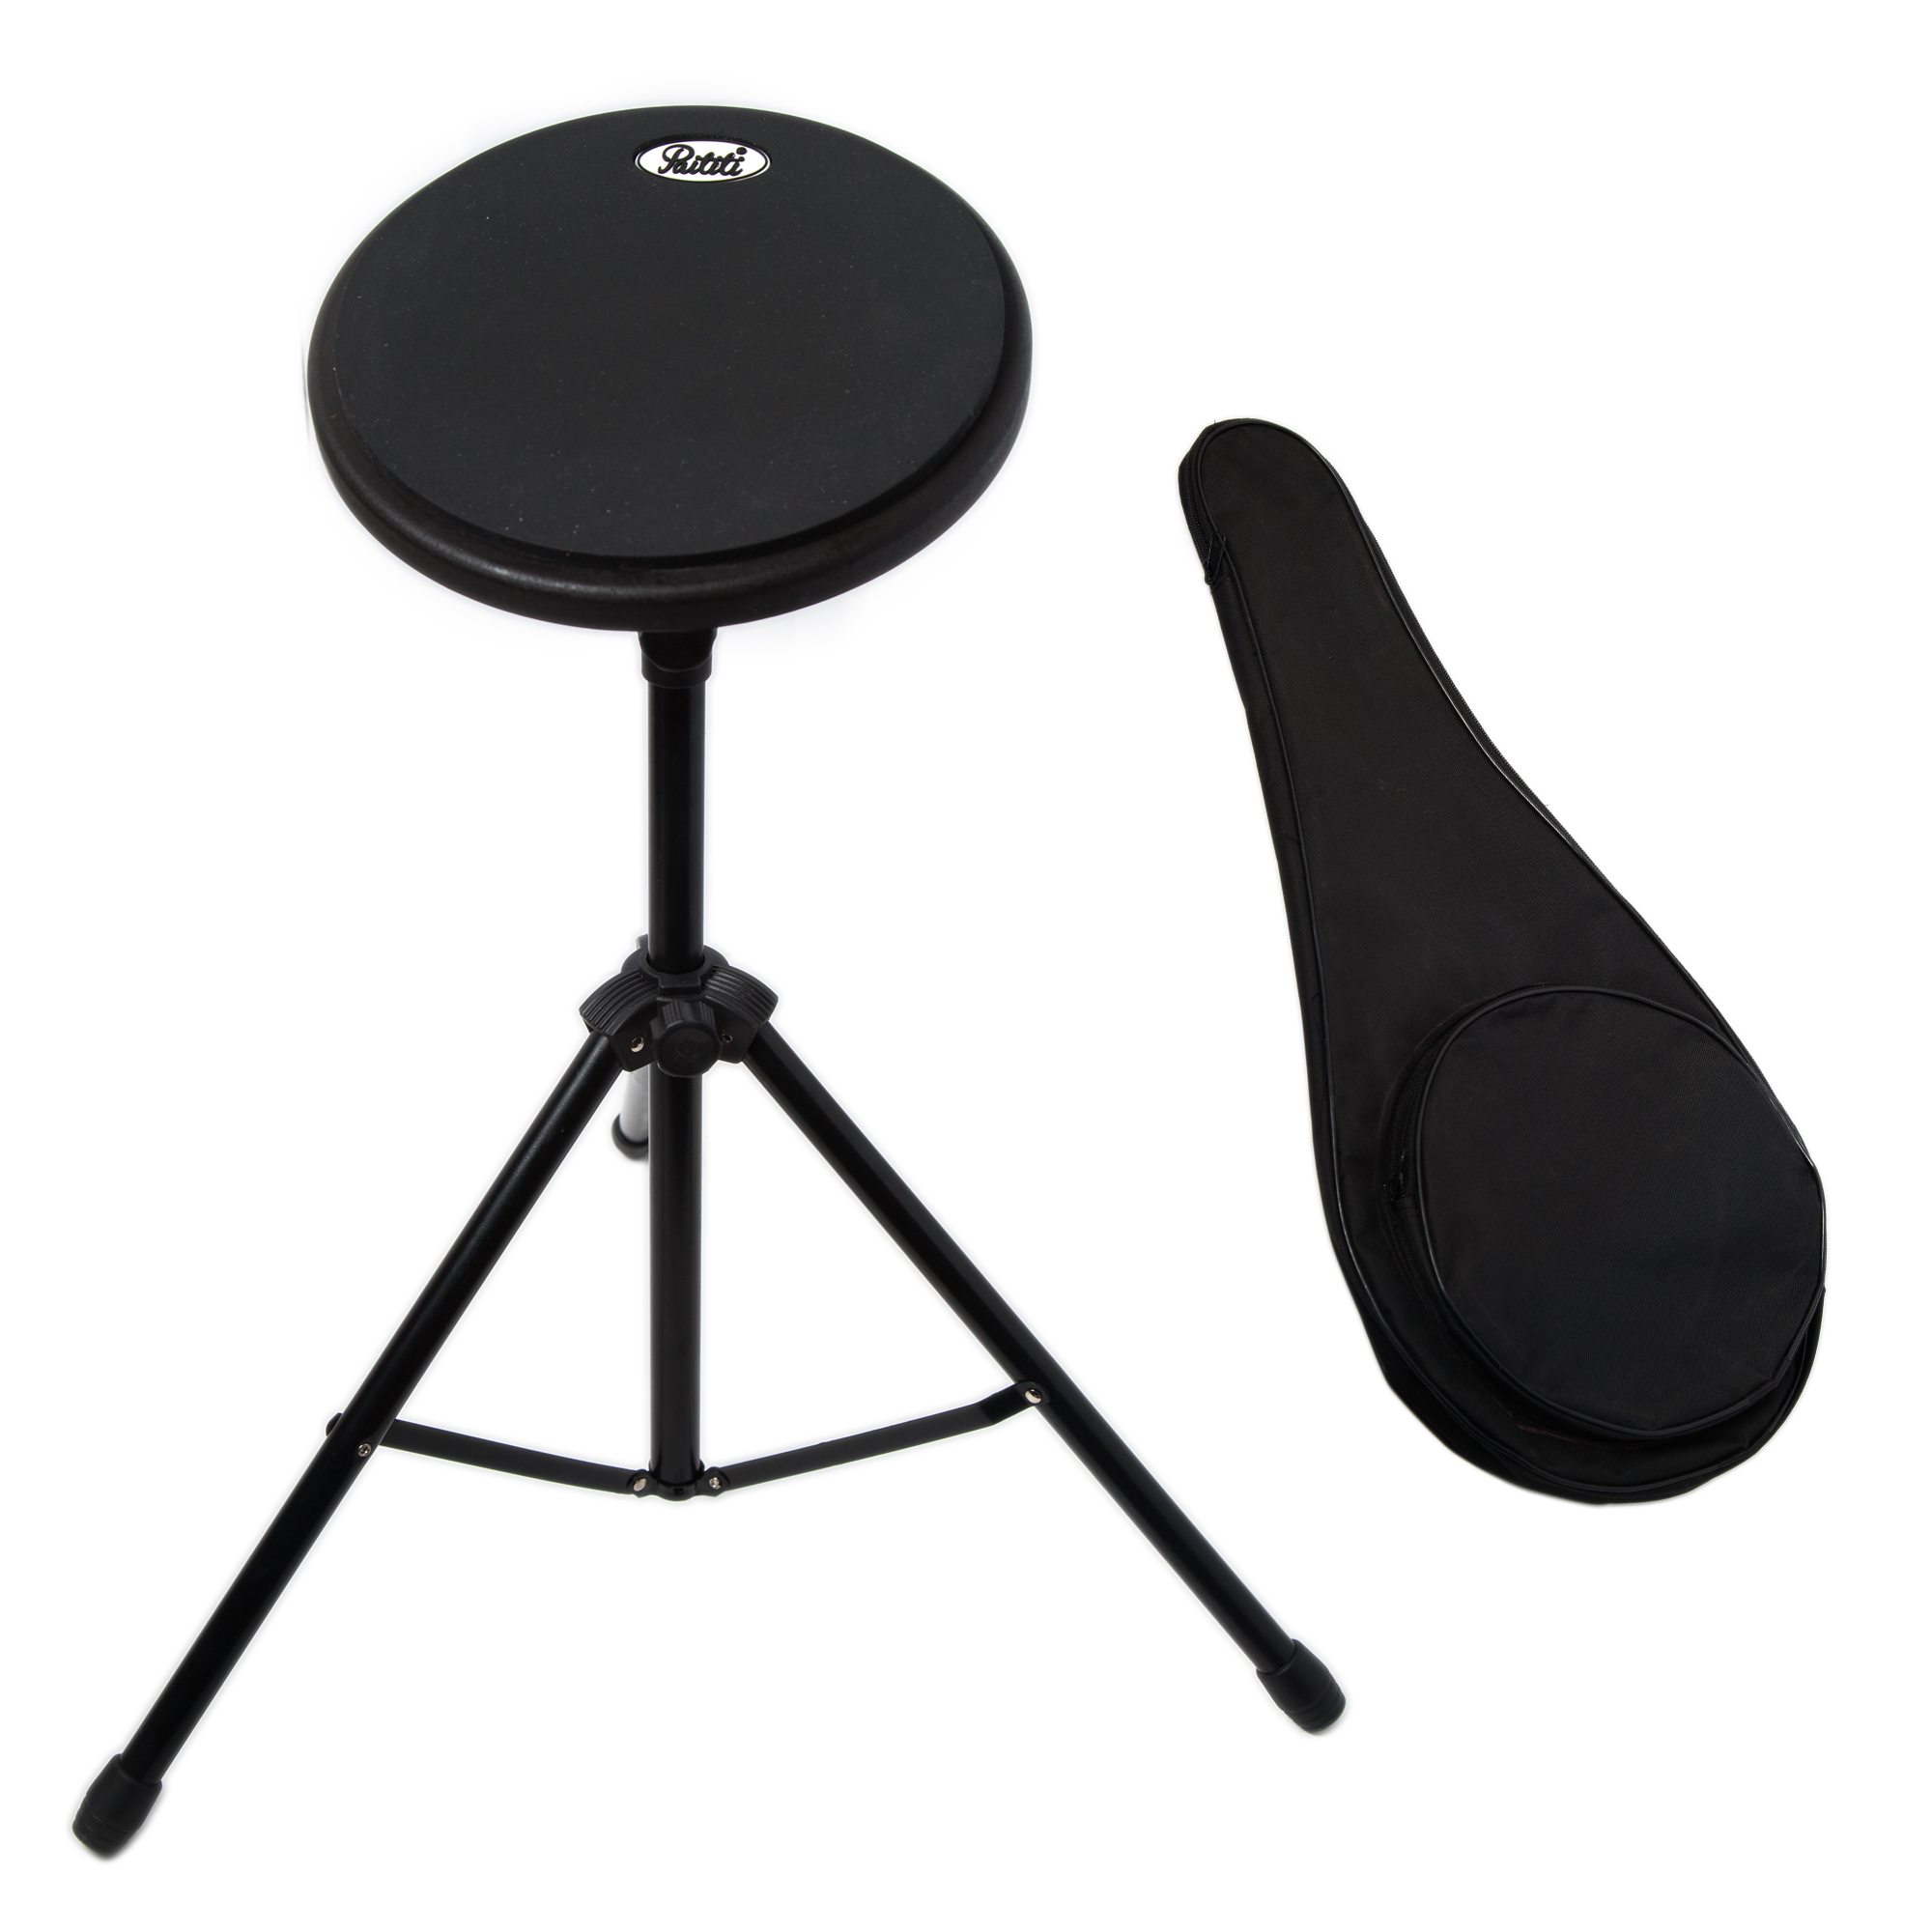 Paititi 8 inch Practice Drum Pad with Adjustable Stand with 7A sticks and Carrying Bag (Black)